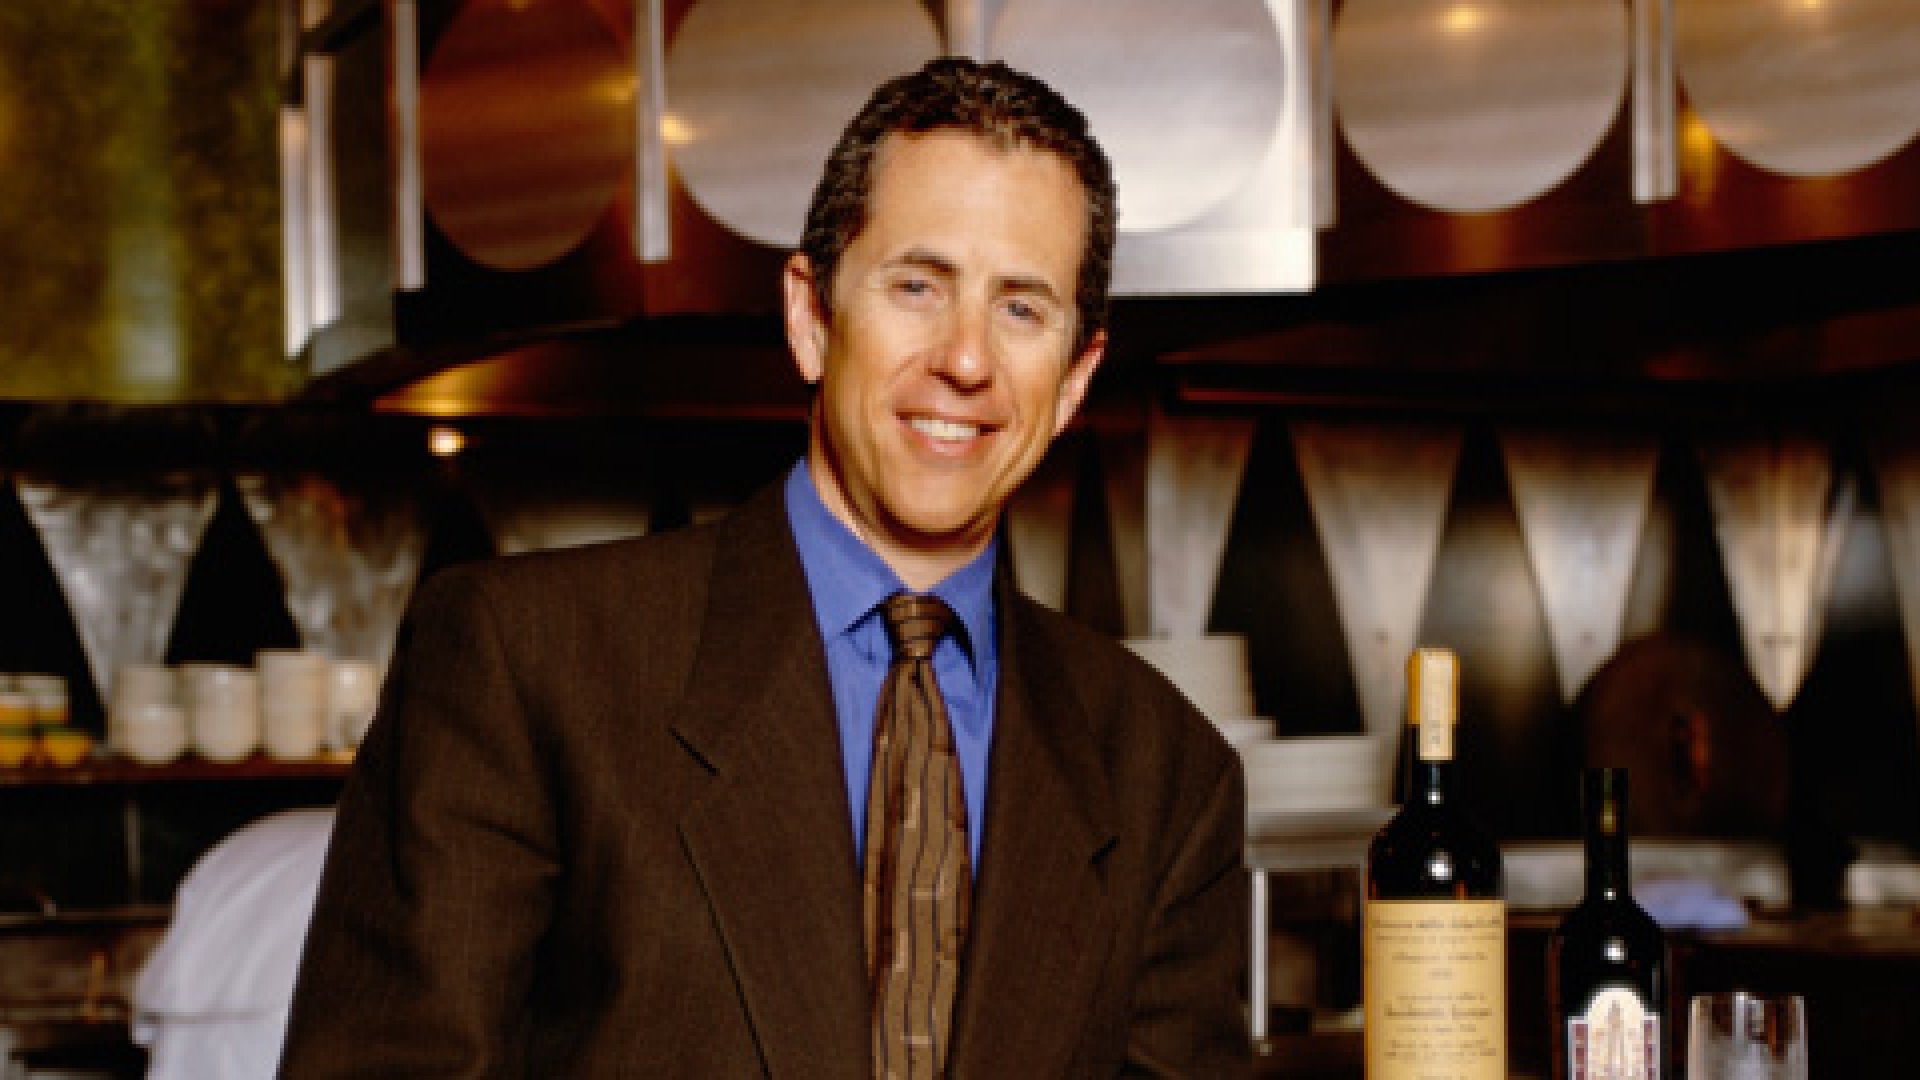 Danny Meyer, owner of Union Square Cafe.